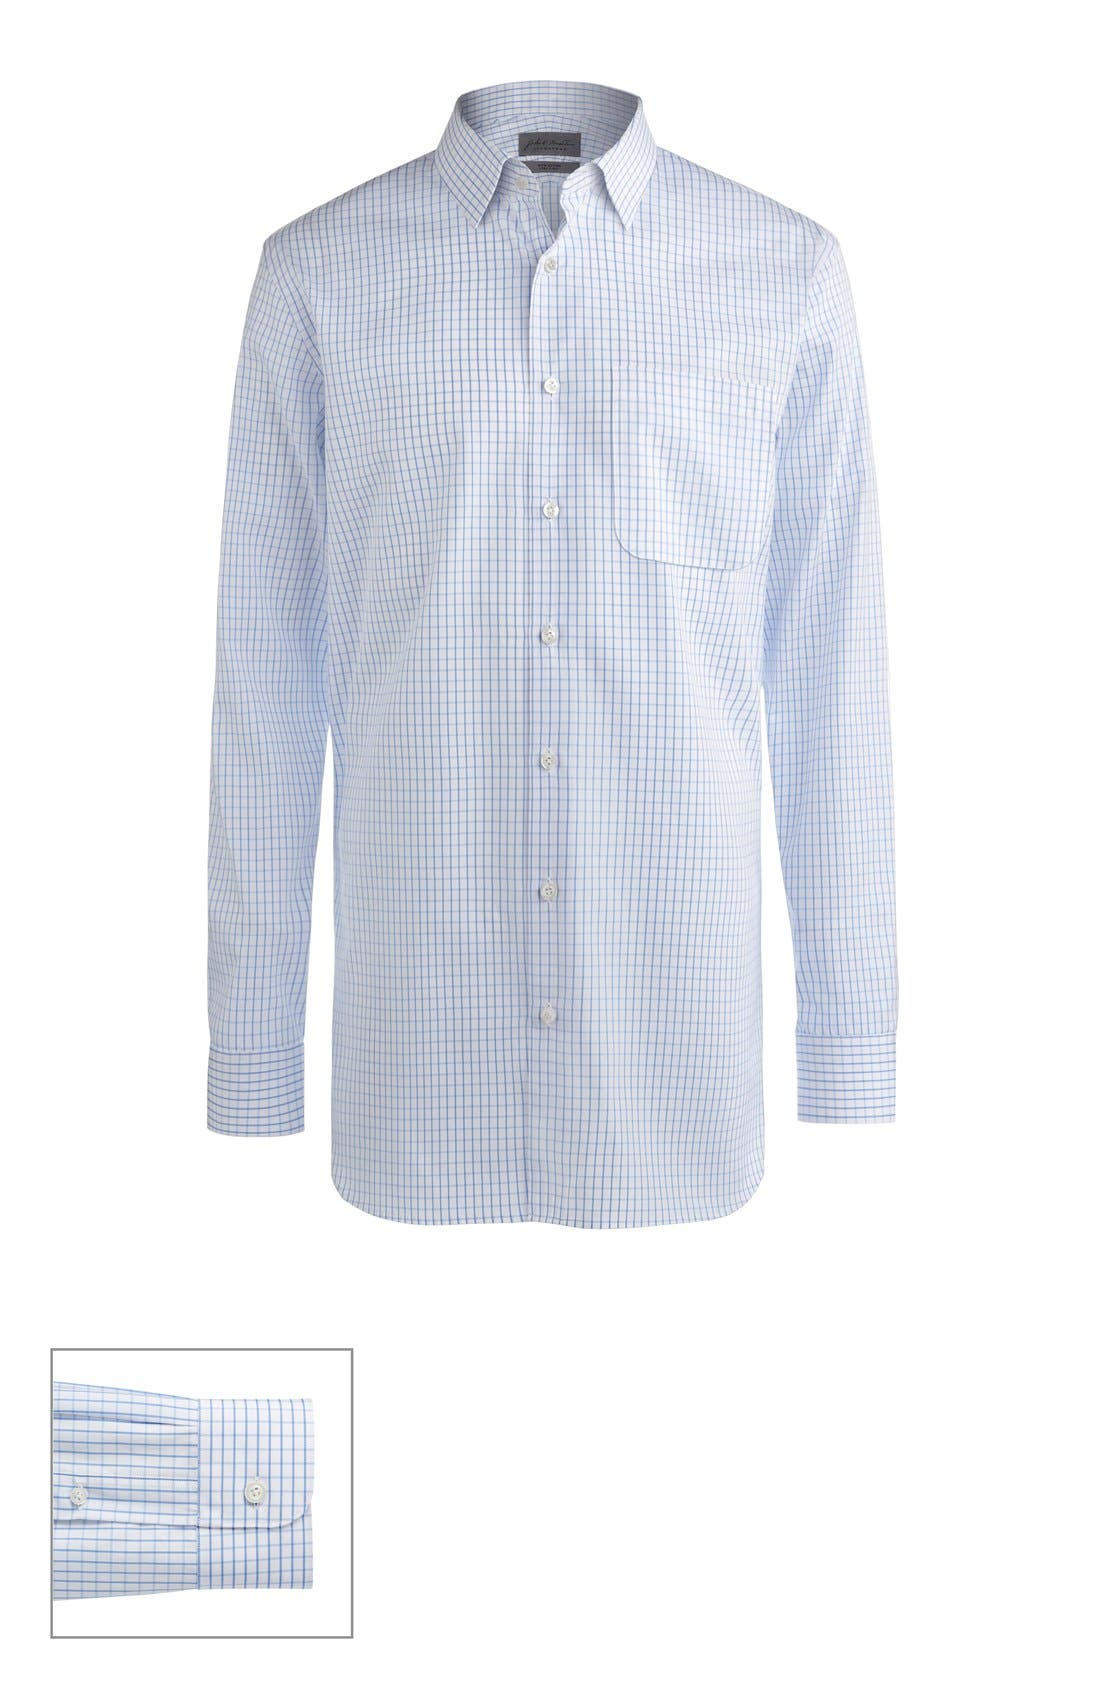 JOHN W. NORDSTROM<SUP>®</SUP>, Made to Measure Extra Trim Fit Straight Collar Dobby Plaid Dress Shirt, Main thumbnail 1, color, 400